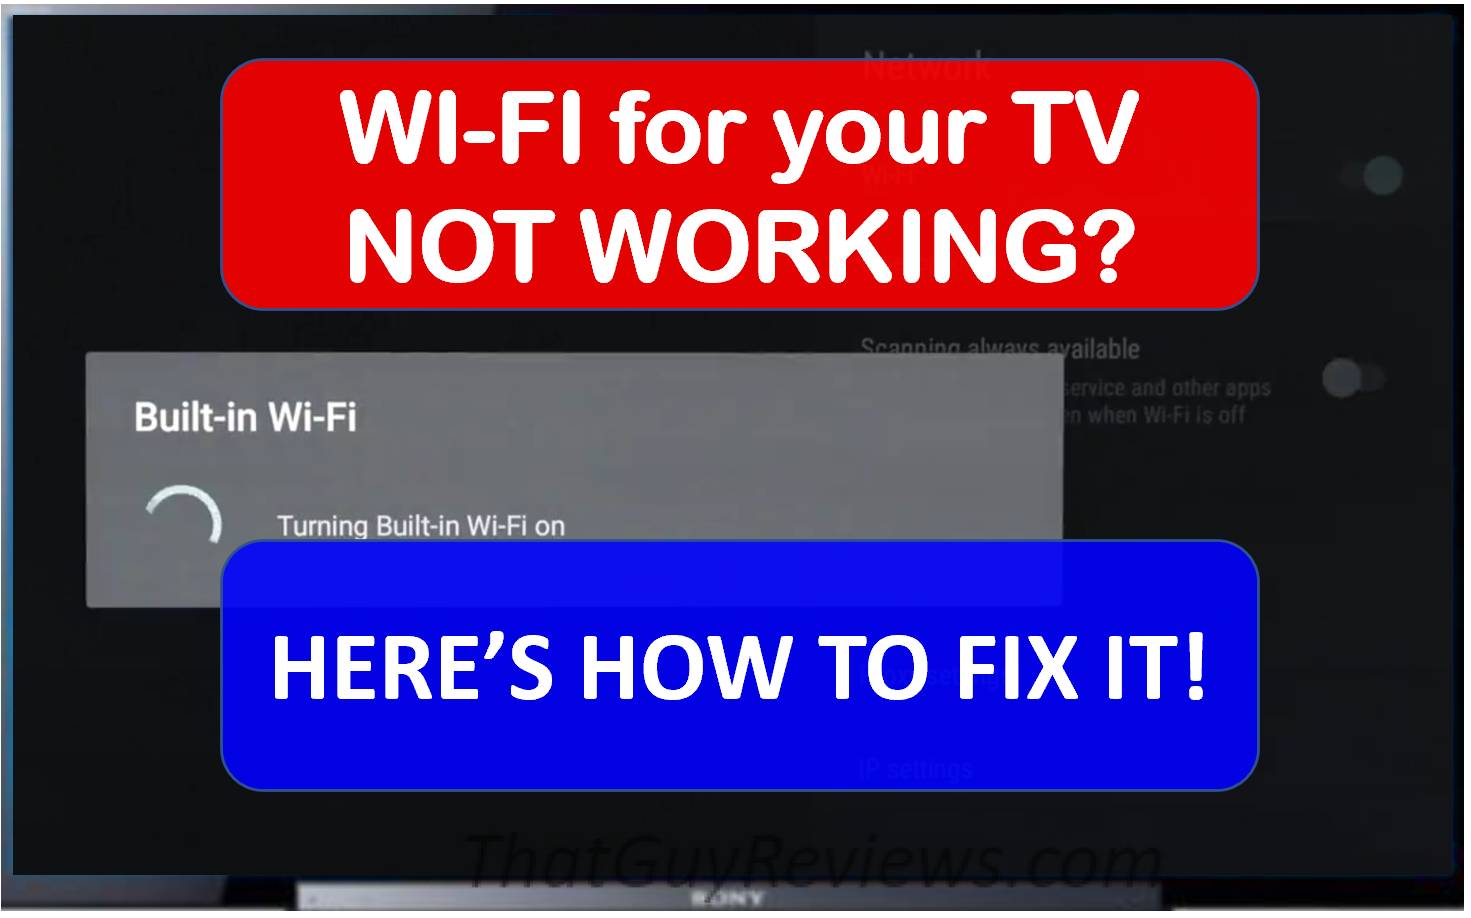 Sony TV Built-in Wi-Fi Not Working